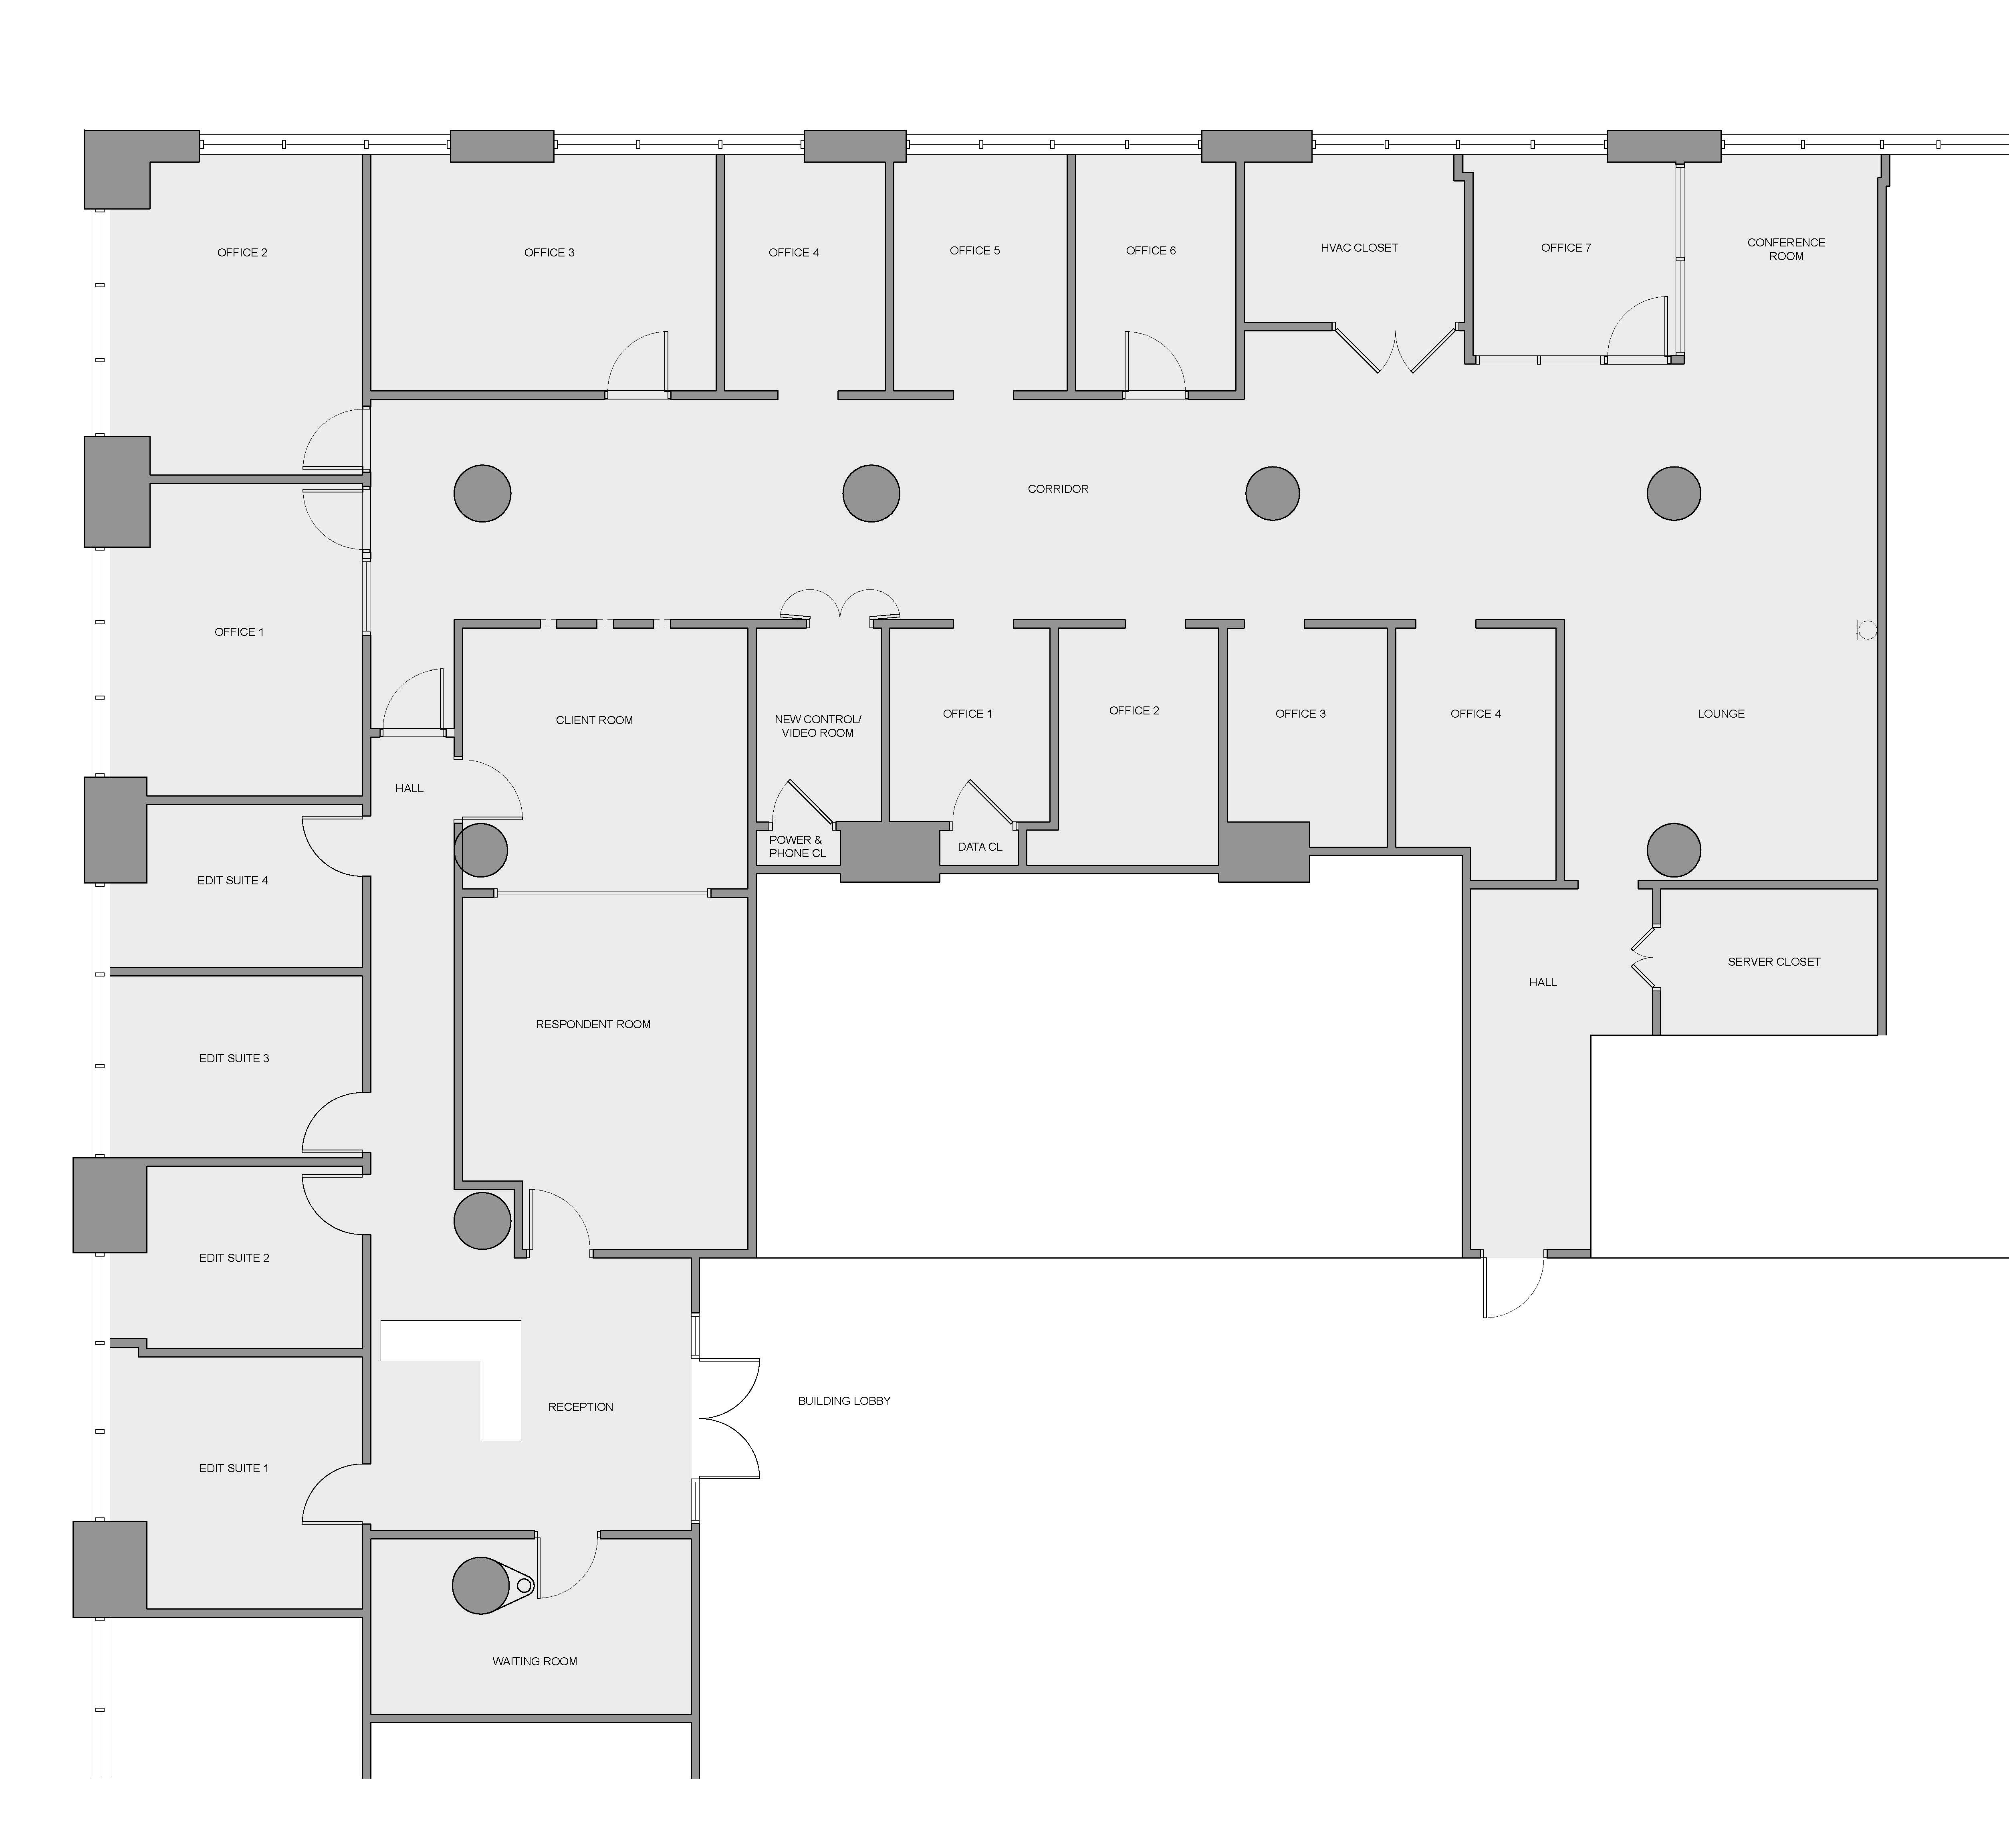 urban pioneering urban pioneering architecture dpc view floor plan this new york marketing and research firm located in tribeca had expanded over the years and their office layout was disorganized and felt